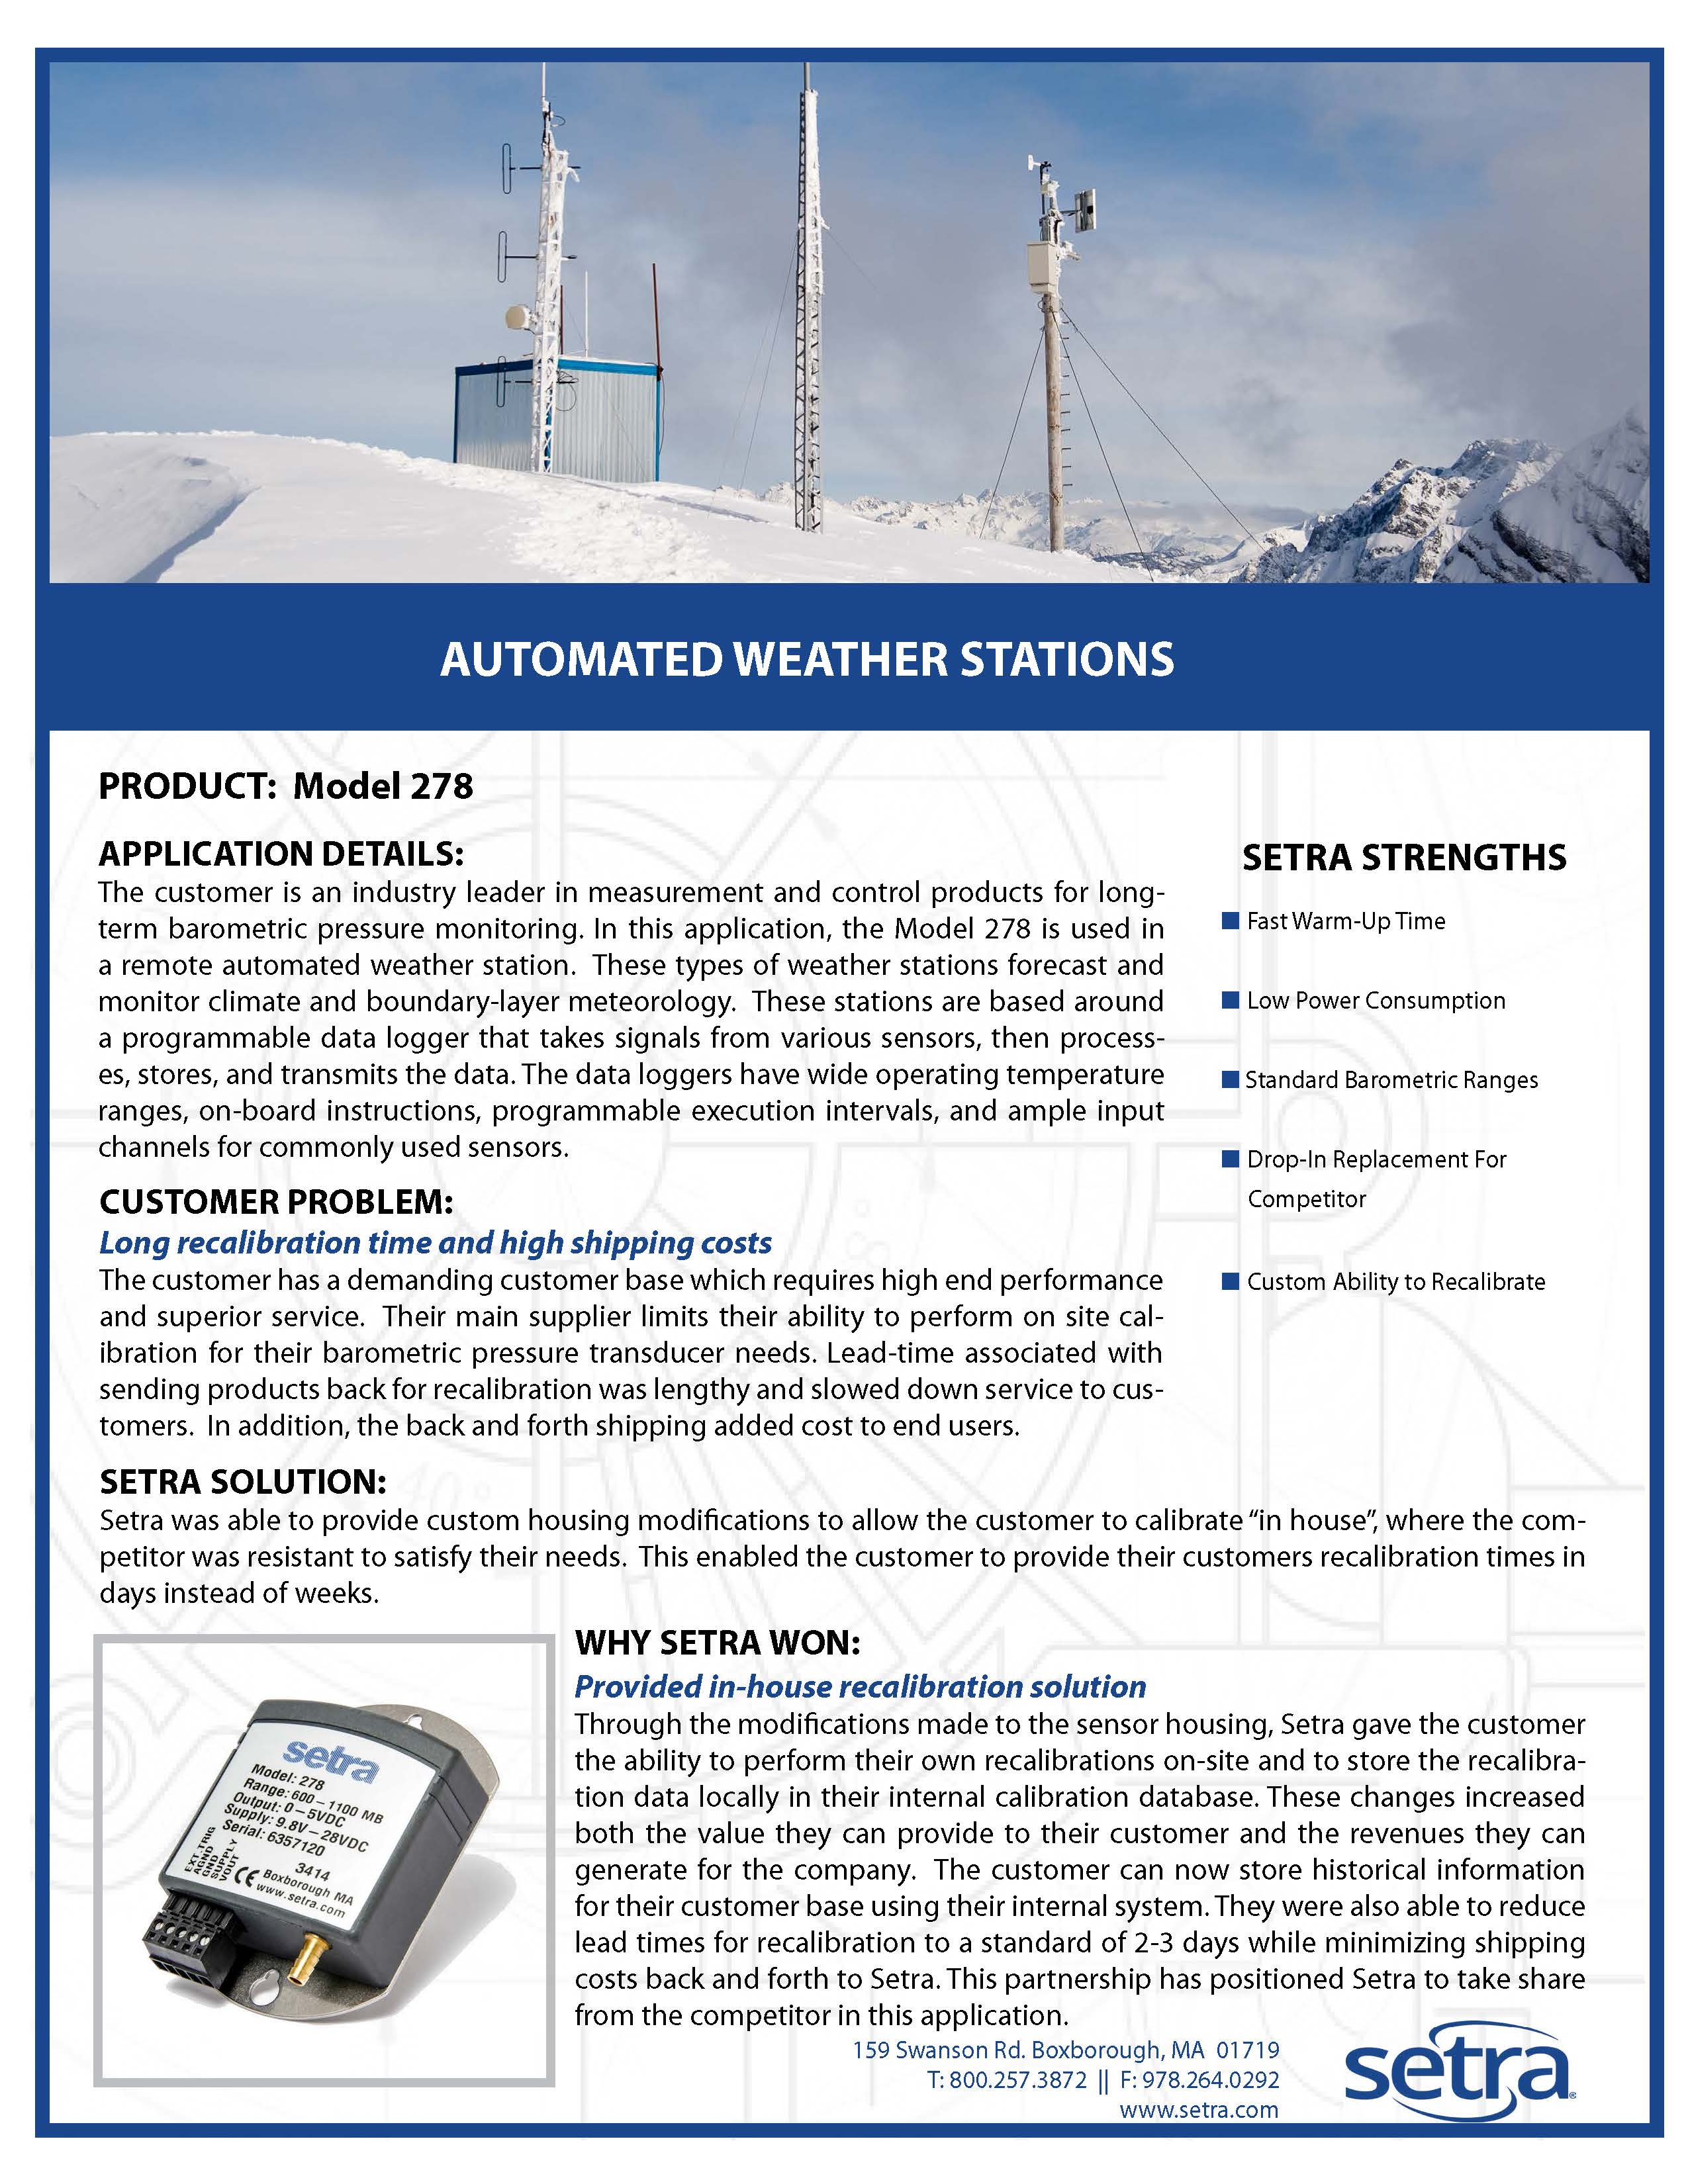 setra 278; renewable energy; weather stations; pressure monitoring; pressure measurement; pressure transducers